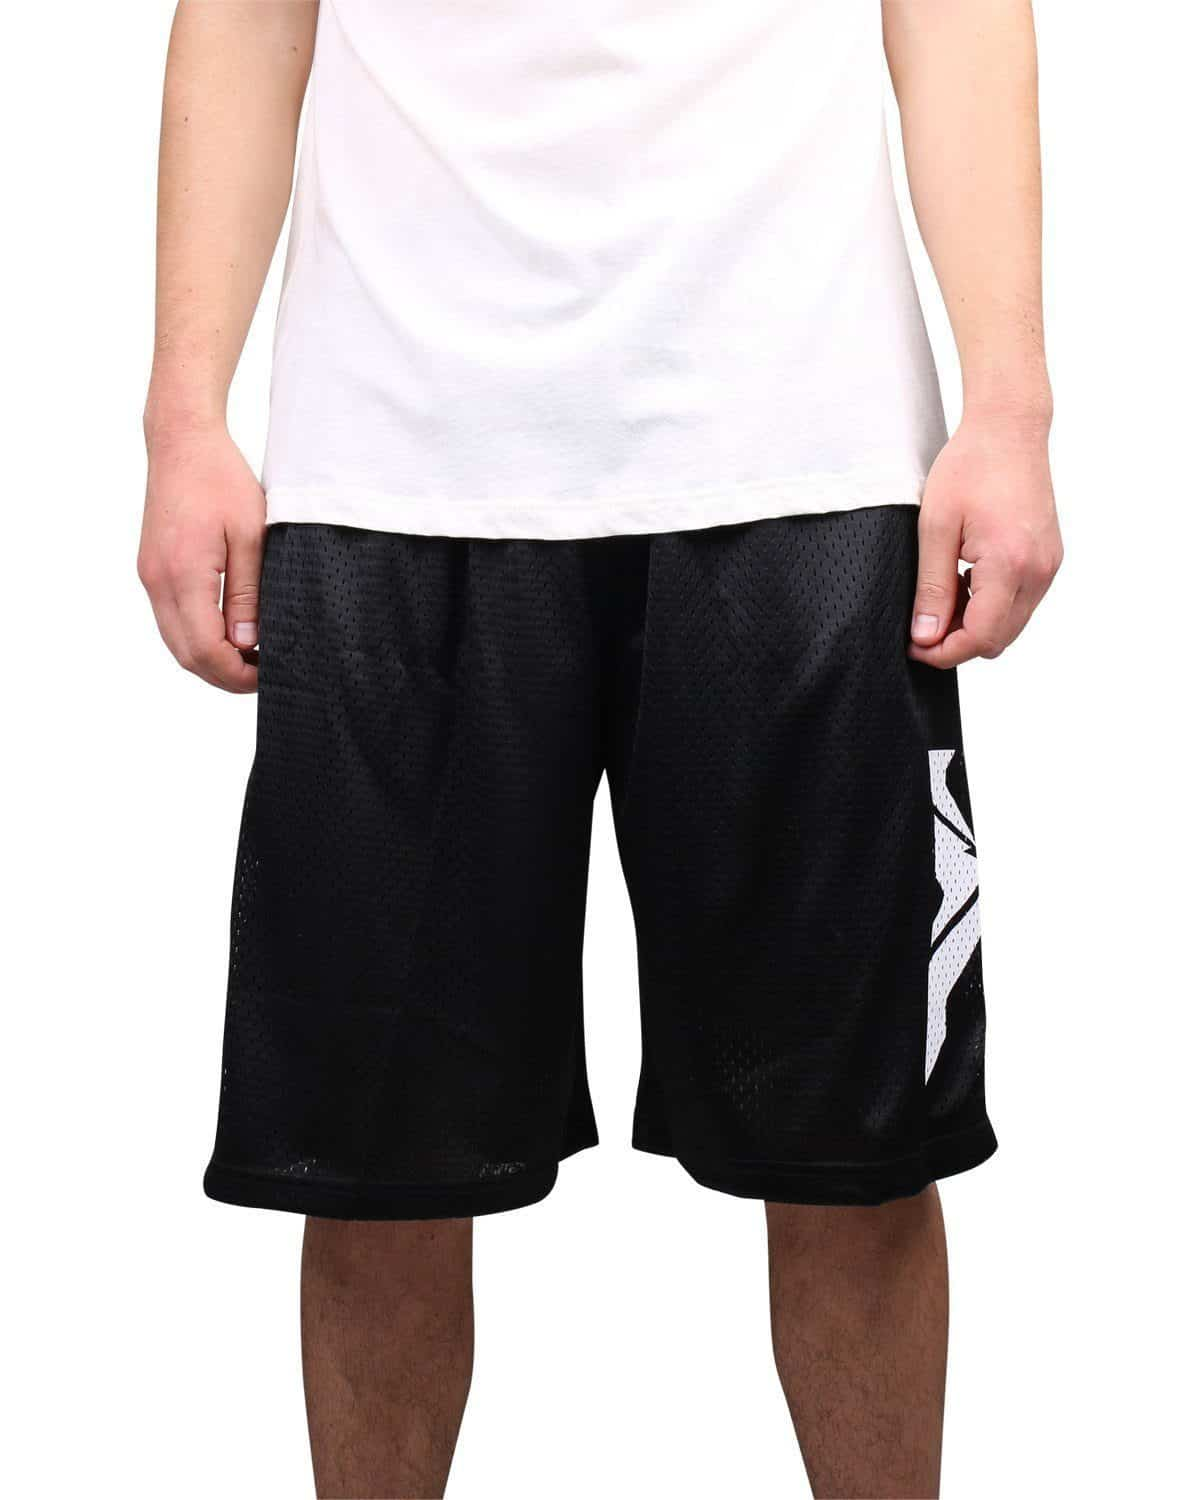 Excision 'Sliced' Logo Basketball Shorts